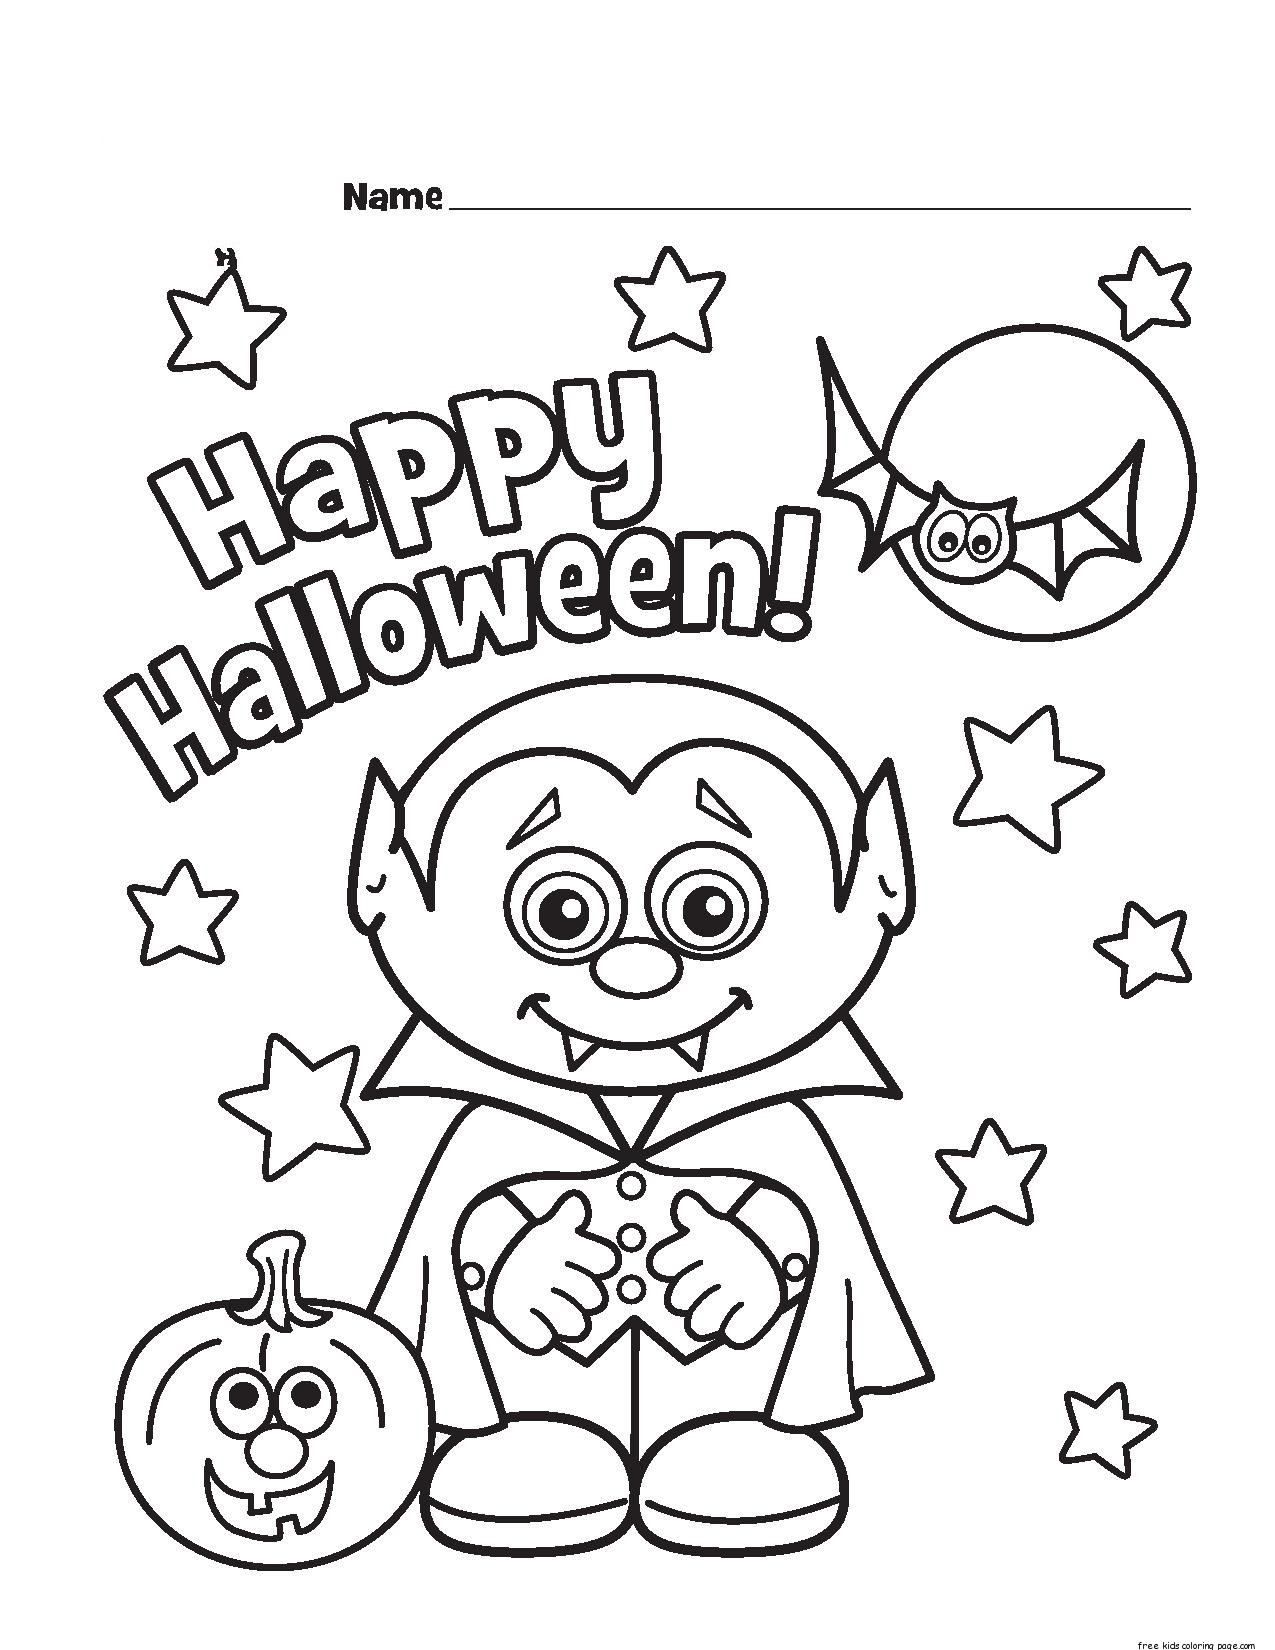 Halloween little vampire printable coloring pages free for Halloween print out coloring pages